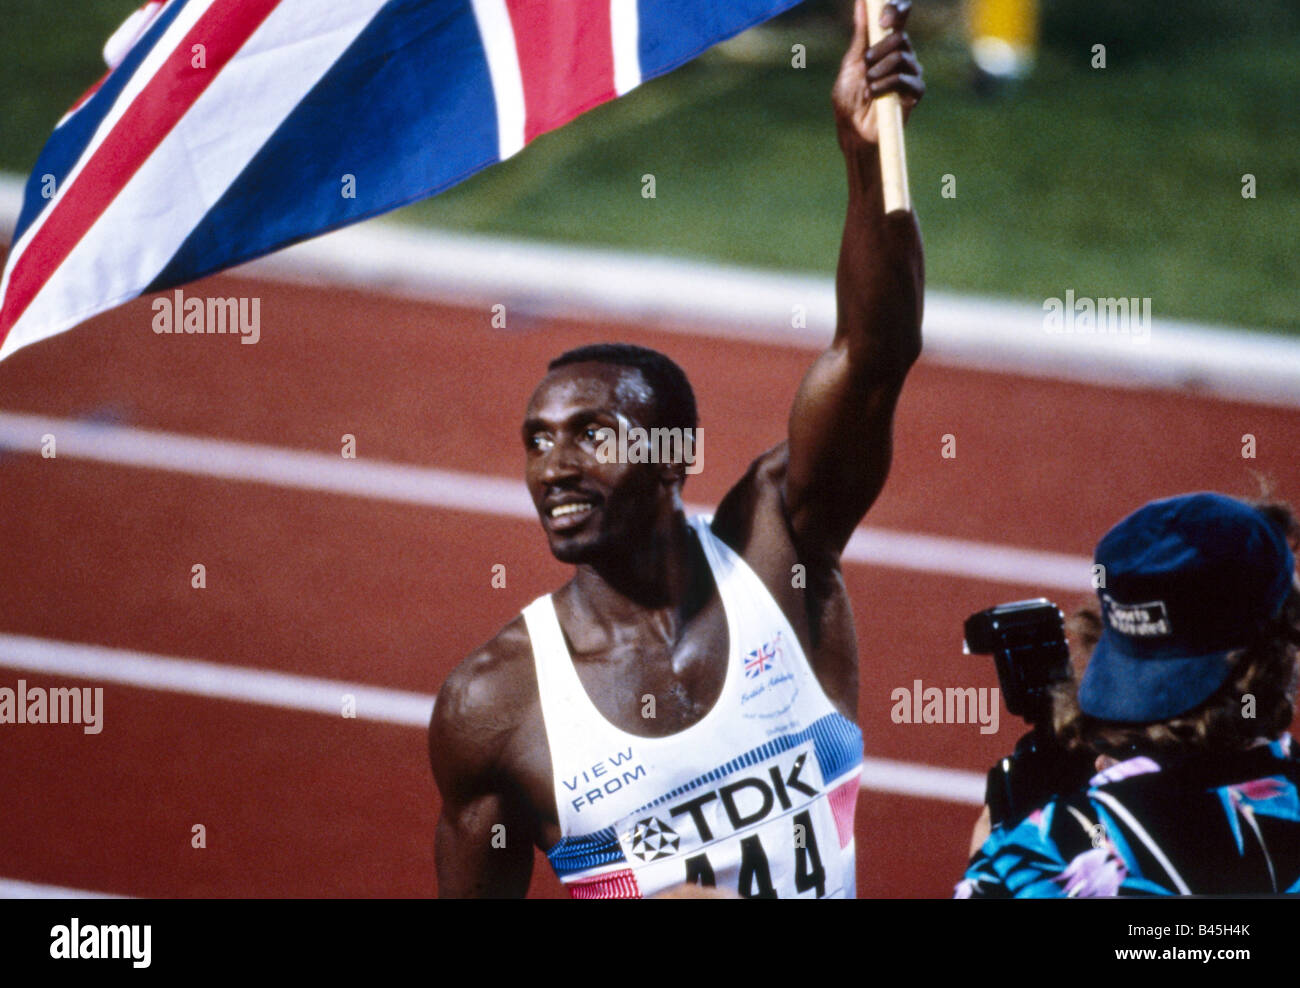 Christie, Linford, * 2.4.1960, Britain athlete (athletics), portrait, world championship, Stuttgart, 1993, Additional - Stock Image